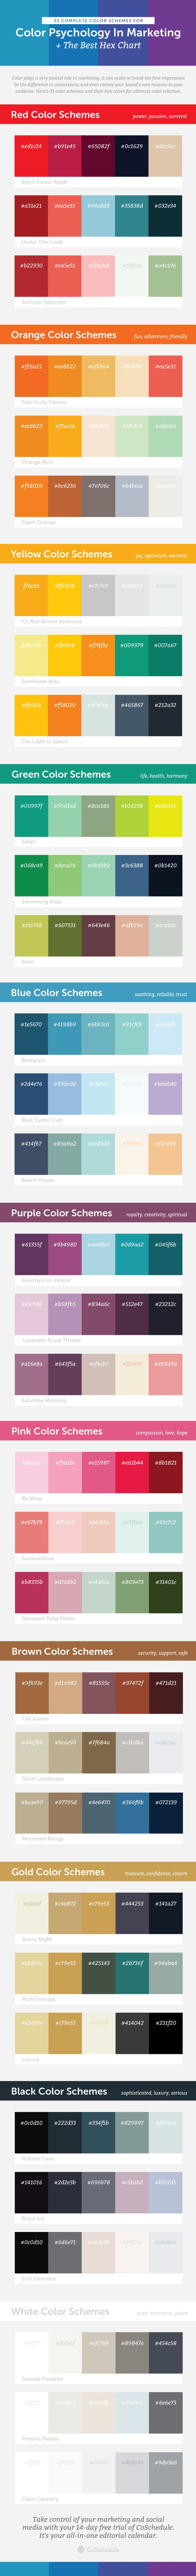 The Know It All Guide To Color Psychology In Marketing + The Best Hex Chart